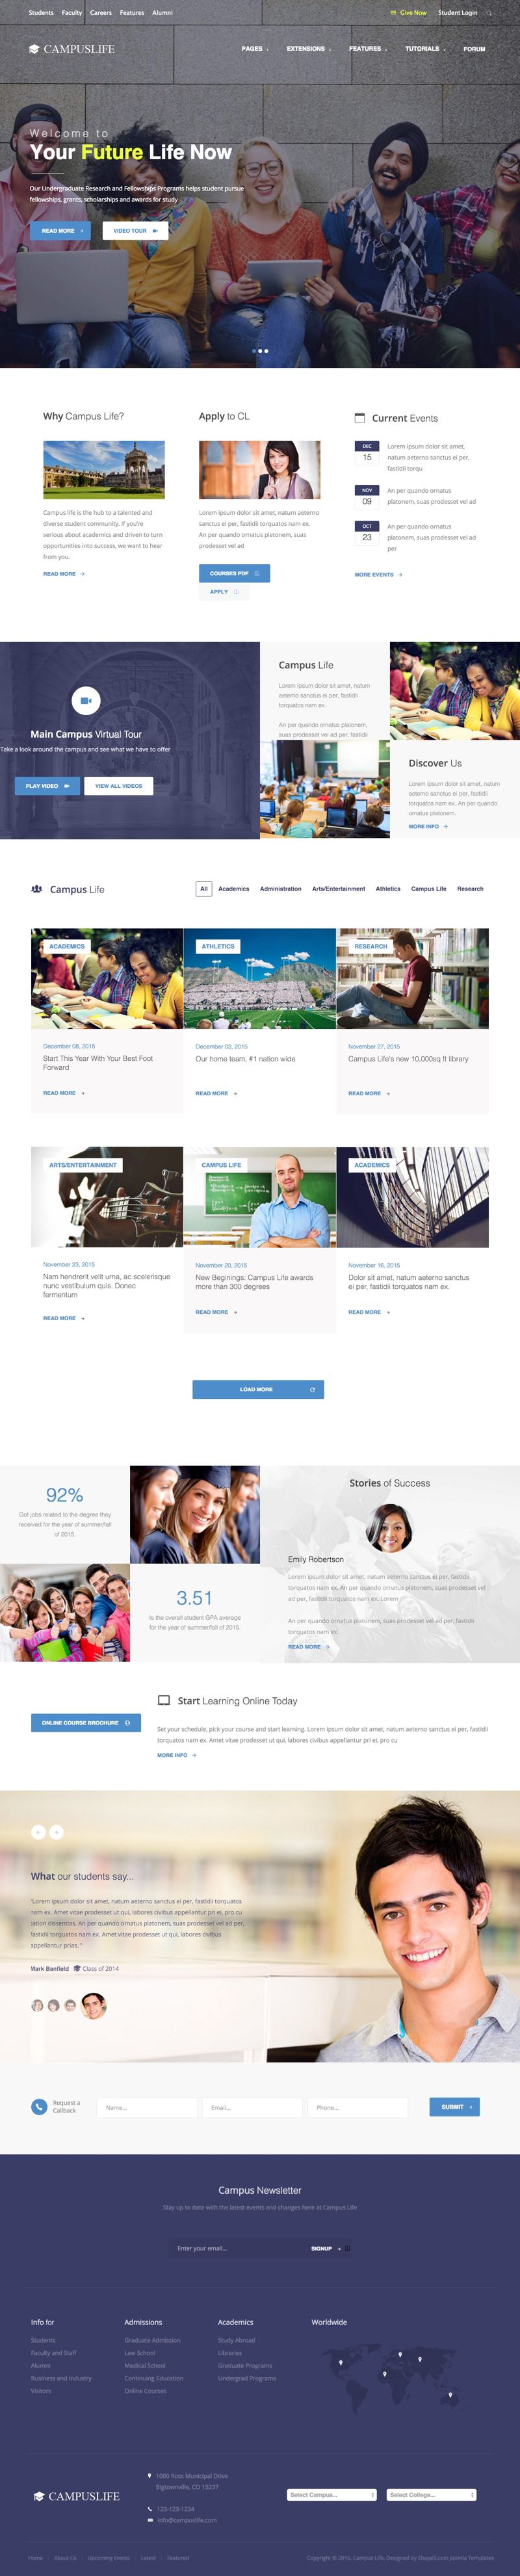 Campus Life Joomla Education Template